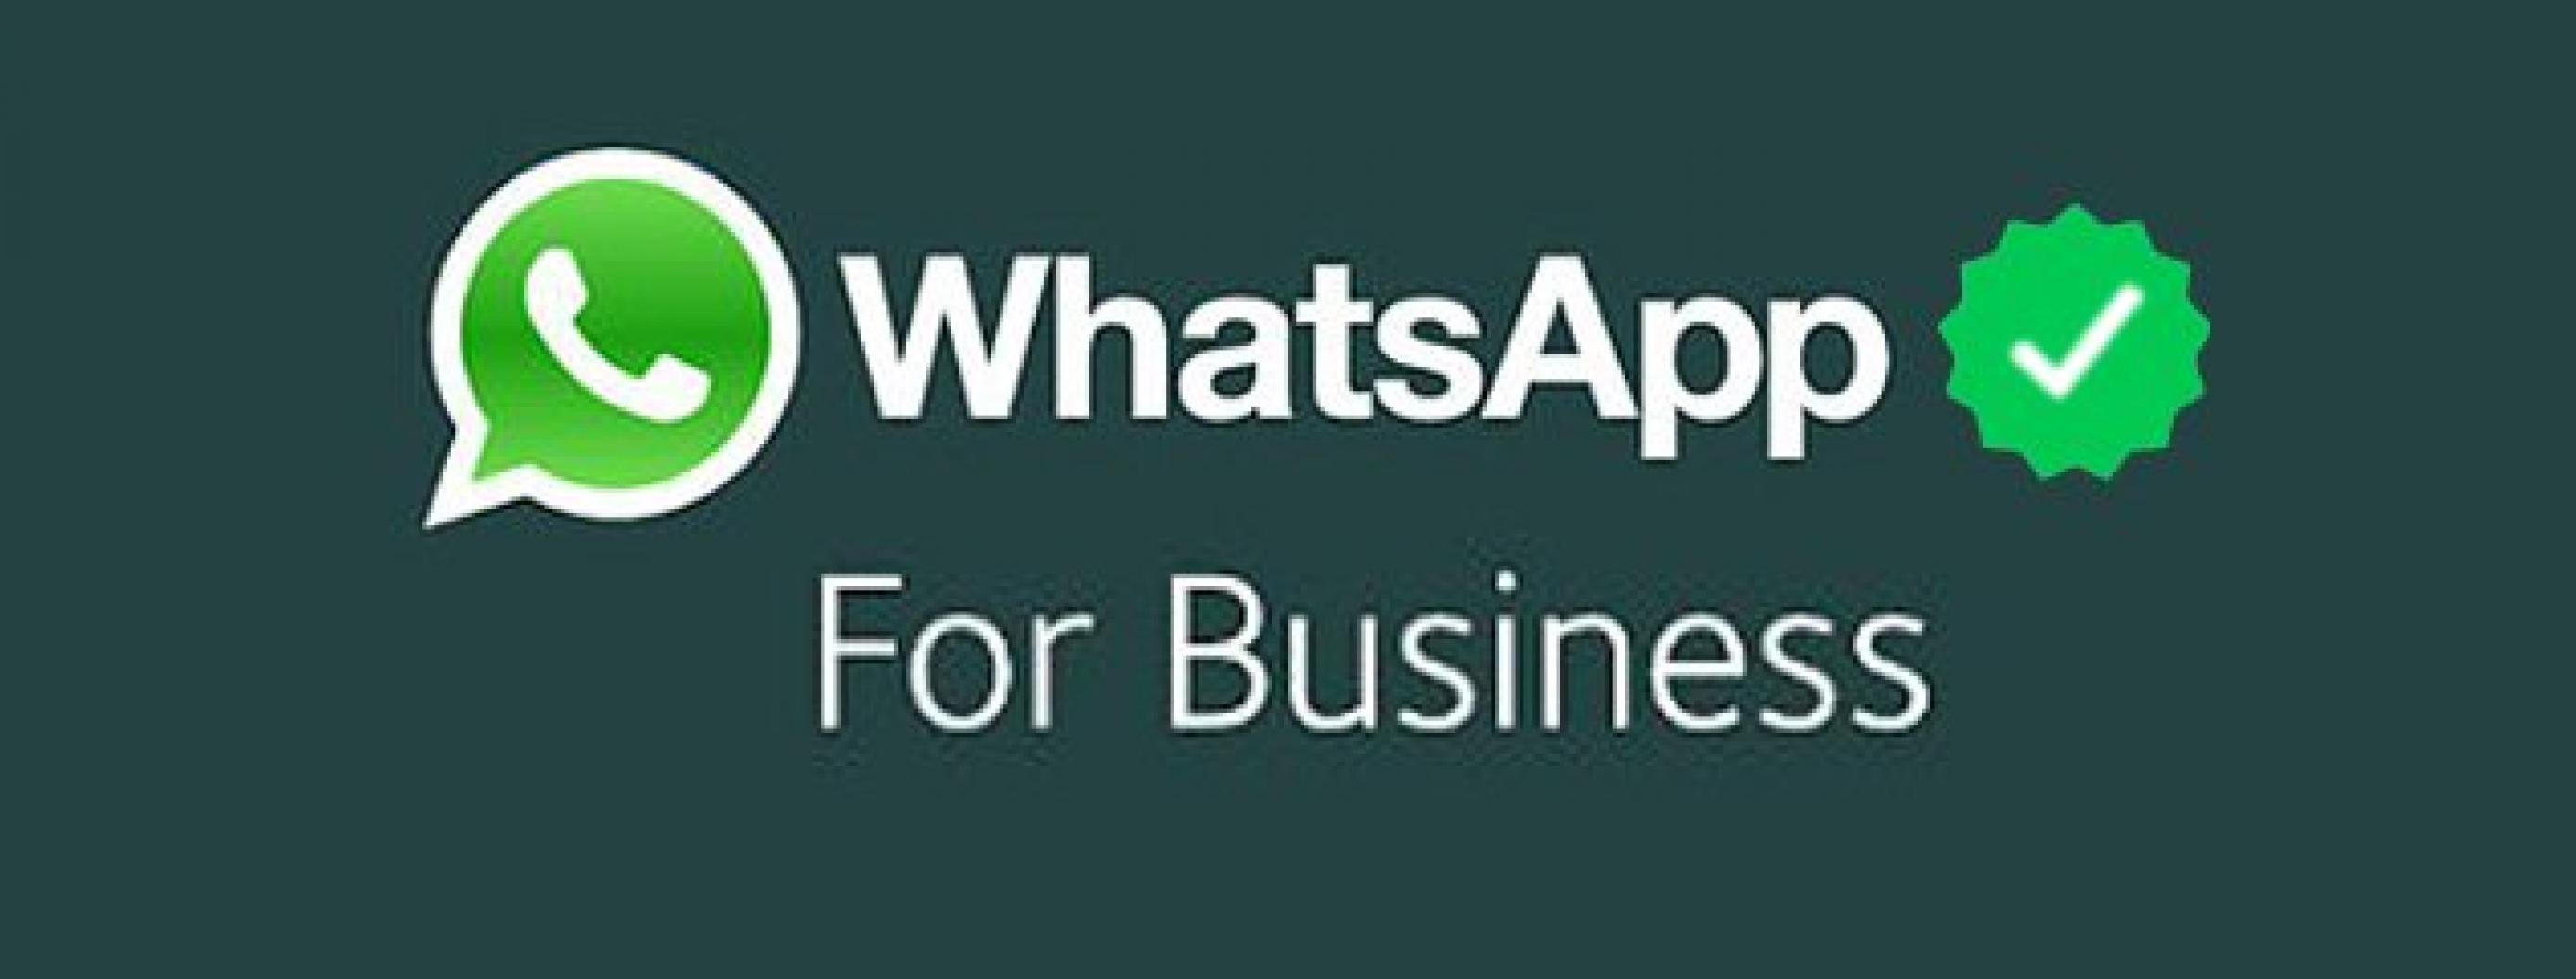 WhatsApp Now Has a Free App Exclusive for Small Businesses